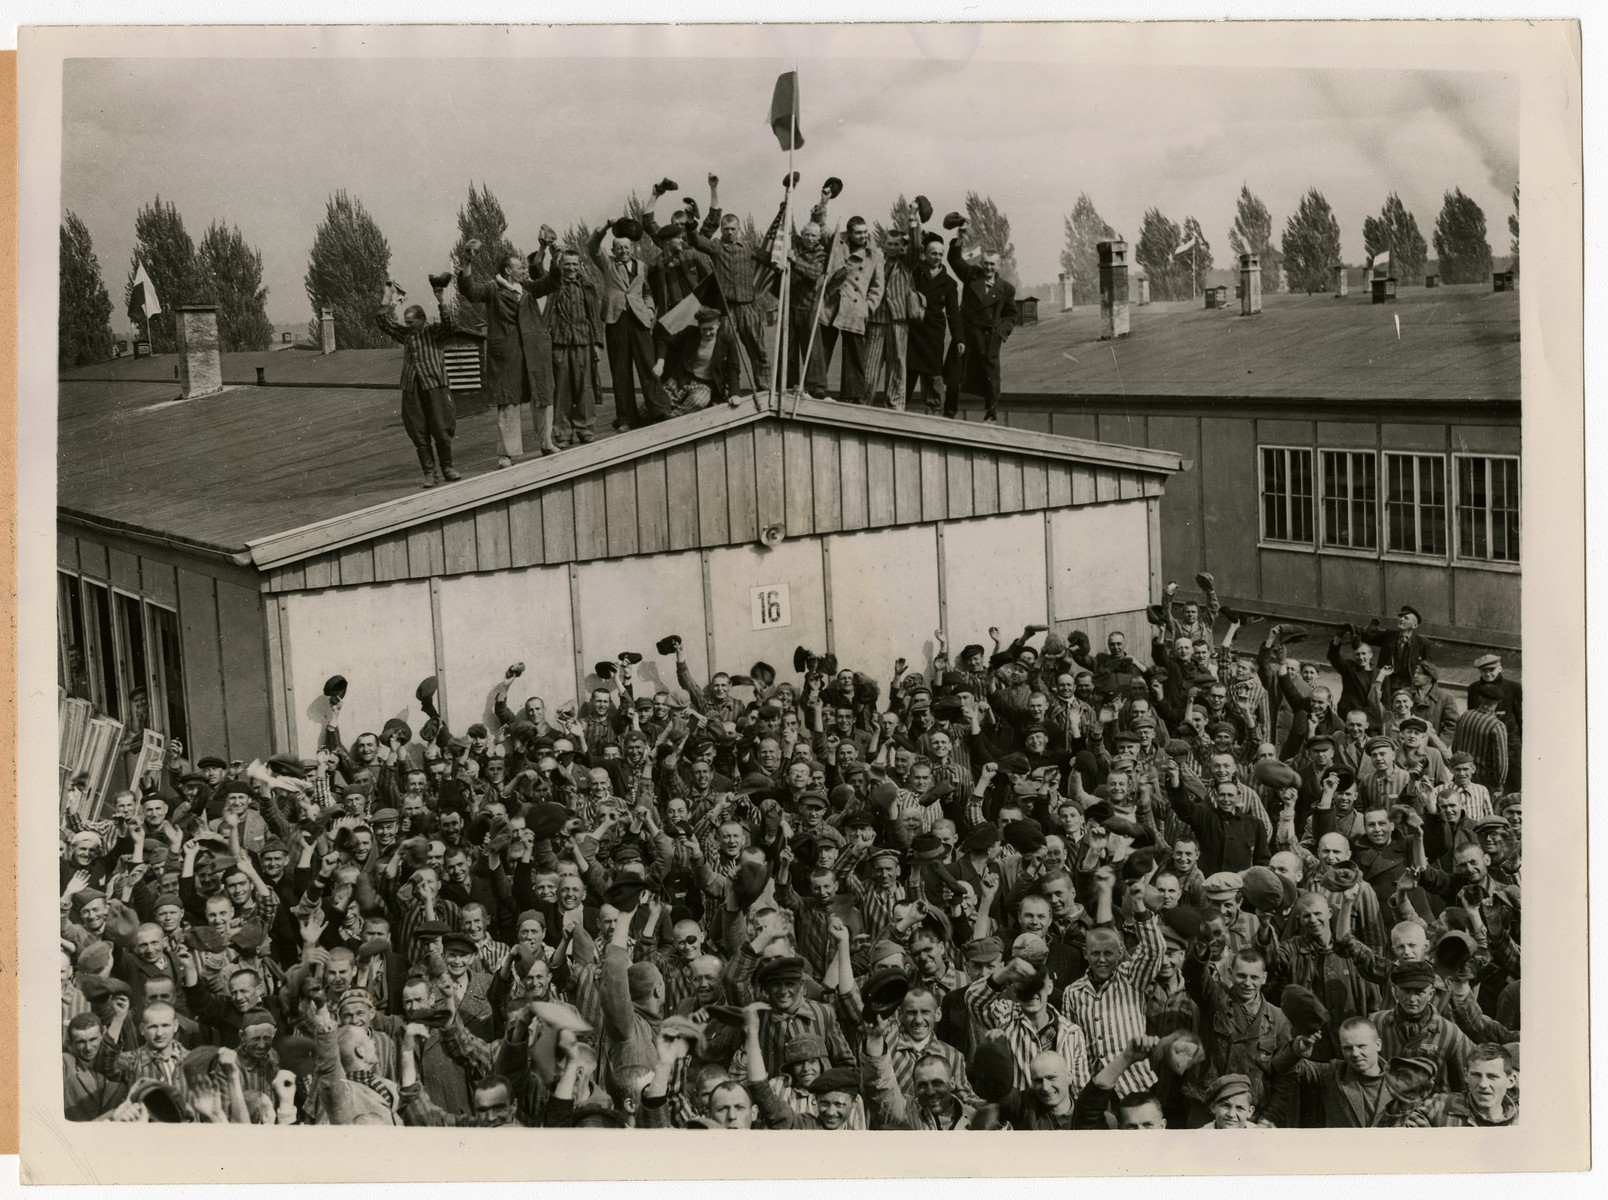 "View of Dachau concentration camp prisoners cheering on their liberators.   The original caption reads: Dachau Concentration Camp Horrors worse than those found in the German concentration camps of Buchenwald and Belsen were discovered in the stinking hell-hole of Dachau, captured by troops of the 42nd and 45th Infantry Division of the Seventh U. S. Army April 30,1945. More than 32,000 prisoners were liberated, among them some Englishmen, Canadians, and Americans. The camp was formally surrendered by an SS lieutenant carrying a white flag, accompanied by a Swiss Red Cross official, but SS troops opened fire as American troops approached the main entrance. The Germans were shot down. Three prisoners were electrocuted when they tried to burst through the electrified wire barrier to welcome the Americans. SS guards opened fire on other prisoners who went wild with joy and rushed to meet the liberating troops.   Prisoners with access to records said 9,000 people died of hunger, disease or shooting within the past three months at Dachau. Four thousand more perished during cold winter months. When Americans entered the camp, they found 50 open railway cars standing on a siding, apparently full fo dirty clothing but actually found to contain hundreds of corpses piled on top of each other. They also found a row of kennels where fierce dogs were kept to set after escaping men. They discovered gas extermination chambers, incinerators full of naked bodies, bodies marked for dissection and the bodies of several small children.   This photo shows: These political prisoners of the Germans were scheduled to be murdered by their Nazi guards but were saved by troops of the 42nd ""Rainbow"" Division. They secretly made flags of Allied nations as they heard the guns of the advancing liberators getting louder and louder. Keystone Photo"